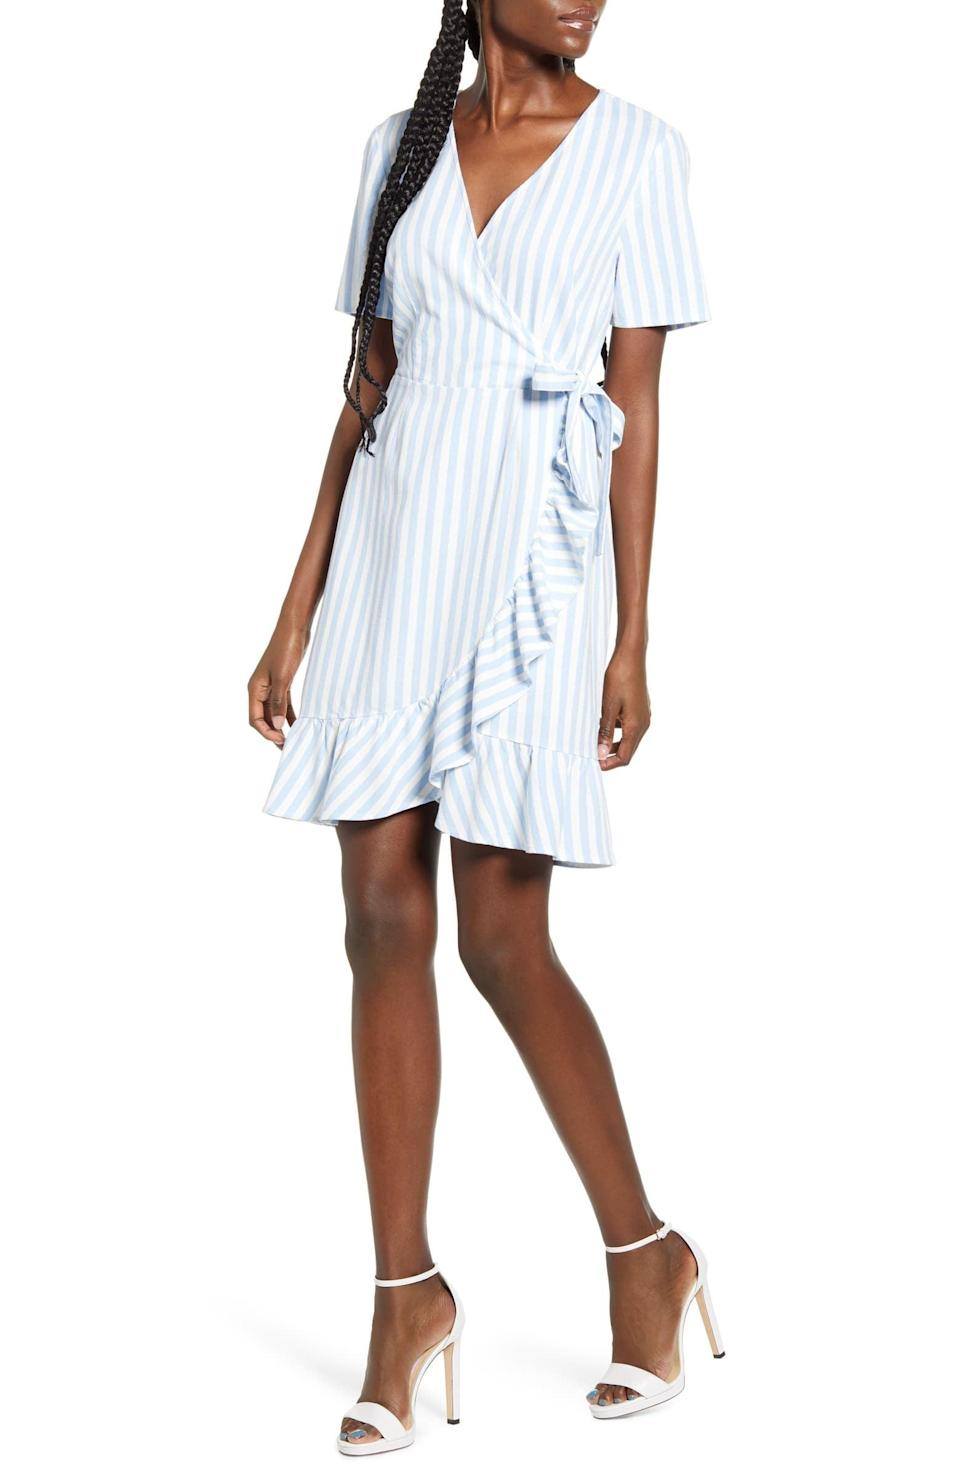 "<p>This <a href=""https://www.popsugar.com/buy/Vero-Moda-Helenmilo-Stripe-Wrap-Front-Linen-Blend-Dress-588373?p_name=Vero%20Moda%20Helenmilo%20Stripe%20Wrap%20Front%20Linen%20Blend%20Dress&retailer=nordstrom.com&pid=588373&price=65&evar1=fab%3Aus&evar9=46355415&evar98=https%3A%2F%2Fwww.popsugar.com%2Ffashion%2Fphoto-gallery%2F46355415%2Fimage%2F47609373%2FVero-Moda-Helenmilo-Stripe-Wrap-Front-Linen-Blend-Dress&list1=shopping%2Cdresses%2Csummer%2Cproducts%20under%20%24100%2Csummer%20fashion&prop13=api&pdata=1"" class=""link rapid-noclick-resp"" rel=""nofollow noopener"" target=""_blank"" data-ylk=""slk:Vero Moda Helenmilo Stripe Wrap Front Linen Blend Dress"">Vero Moda Helenmilo Stripe Wrap Front Linen Blend Dress</a> ($65) feels so seasonally appropriate.</p>"